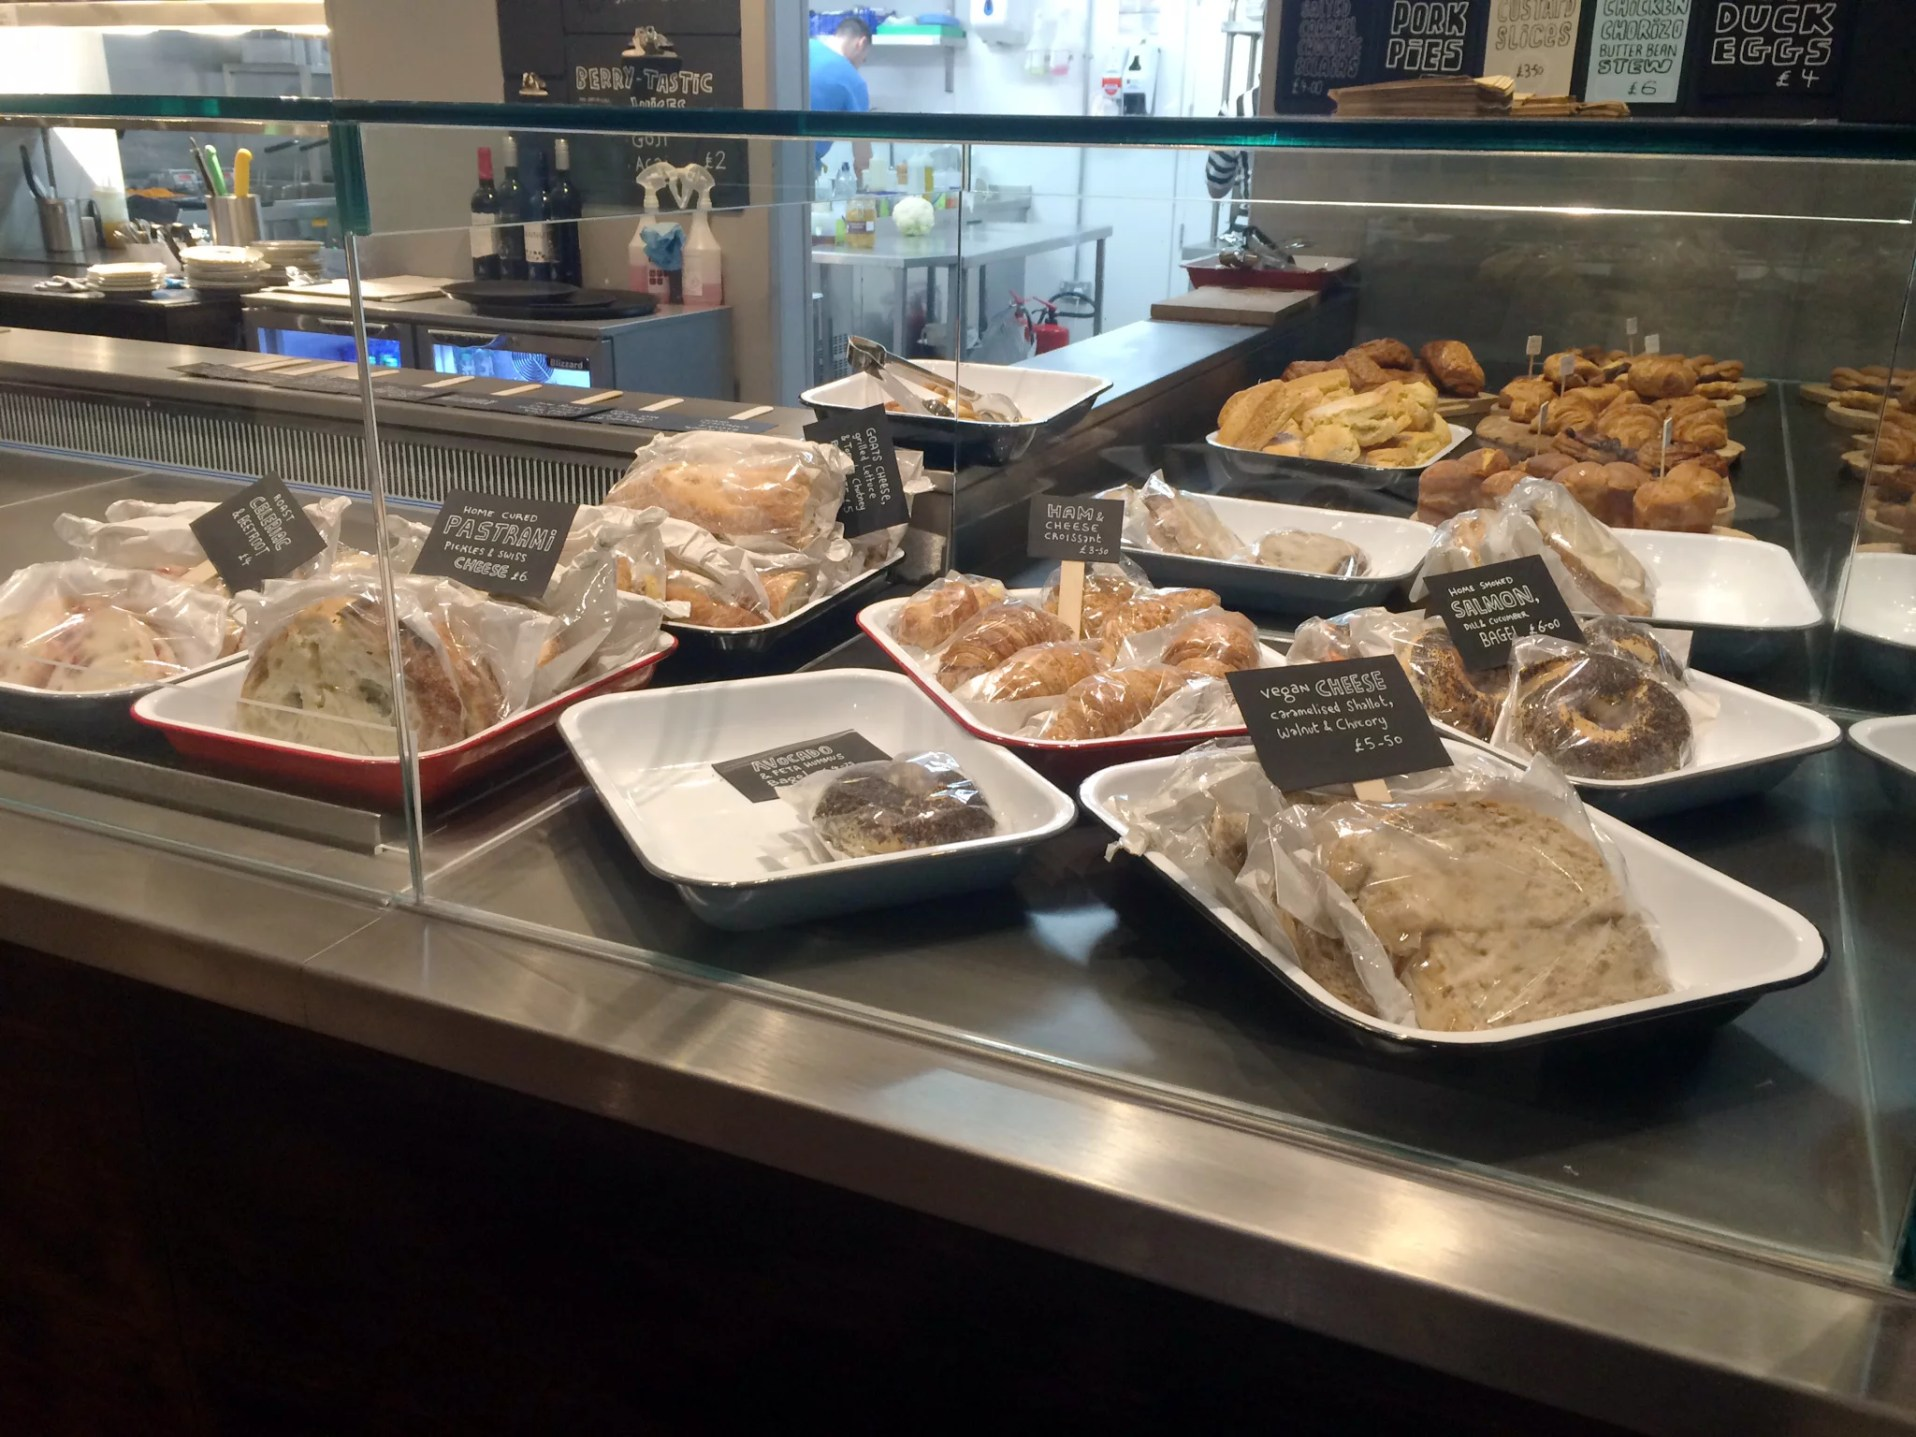 Sandwich and pastry selection